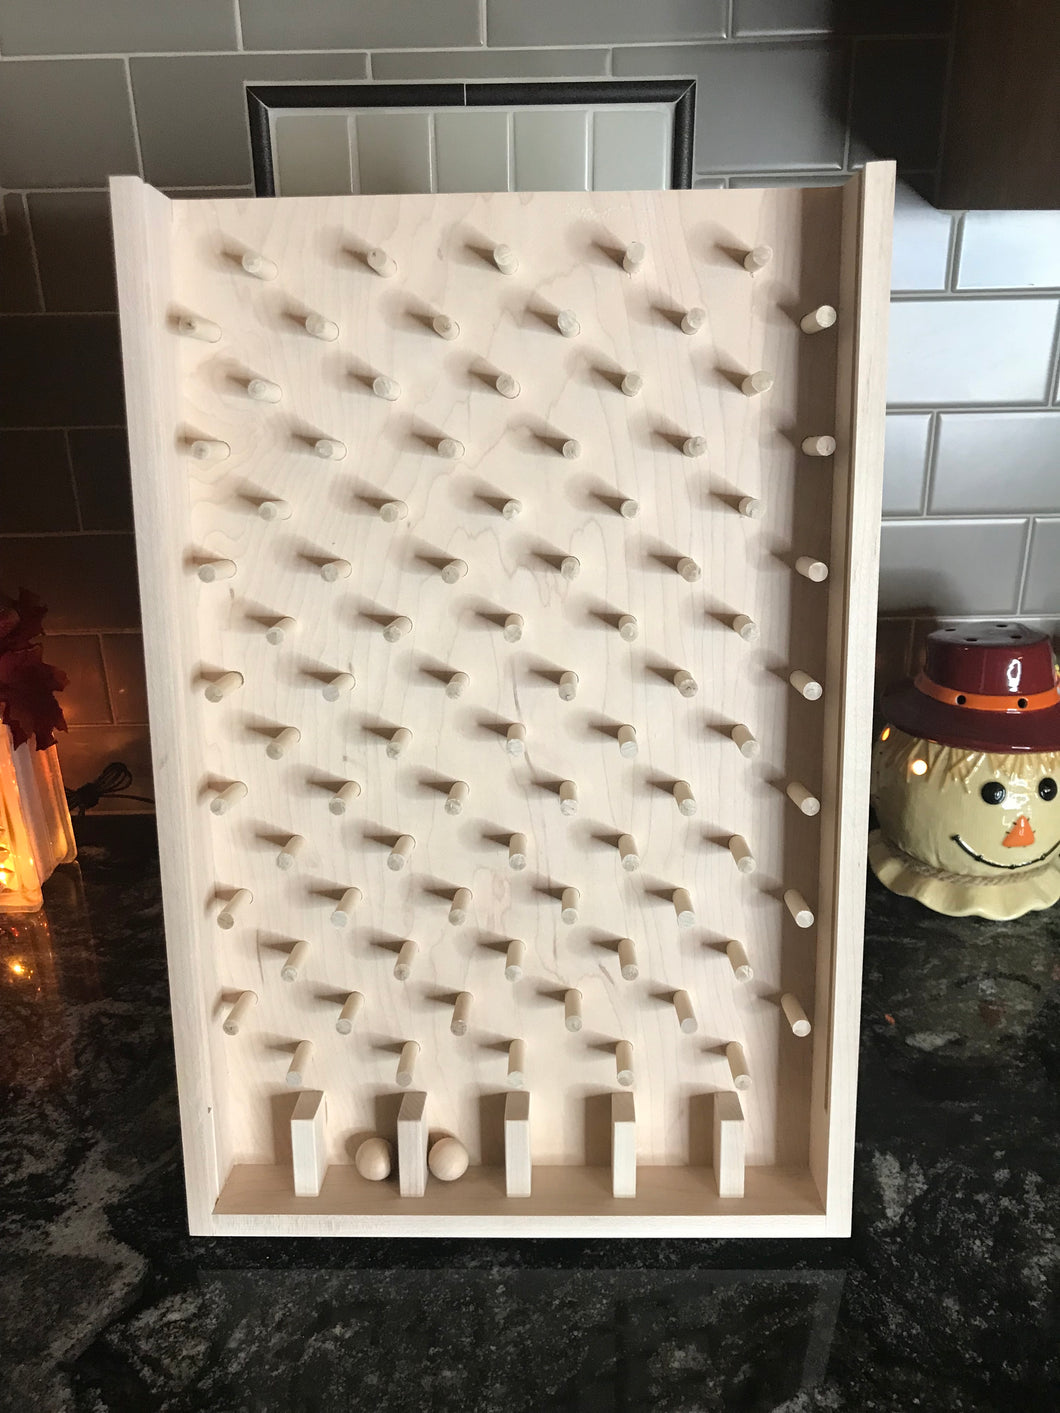 Unfinished wooden plinko game for trade shows and promotion